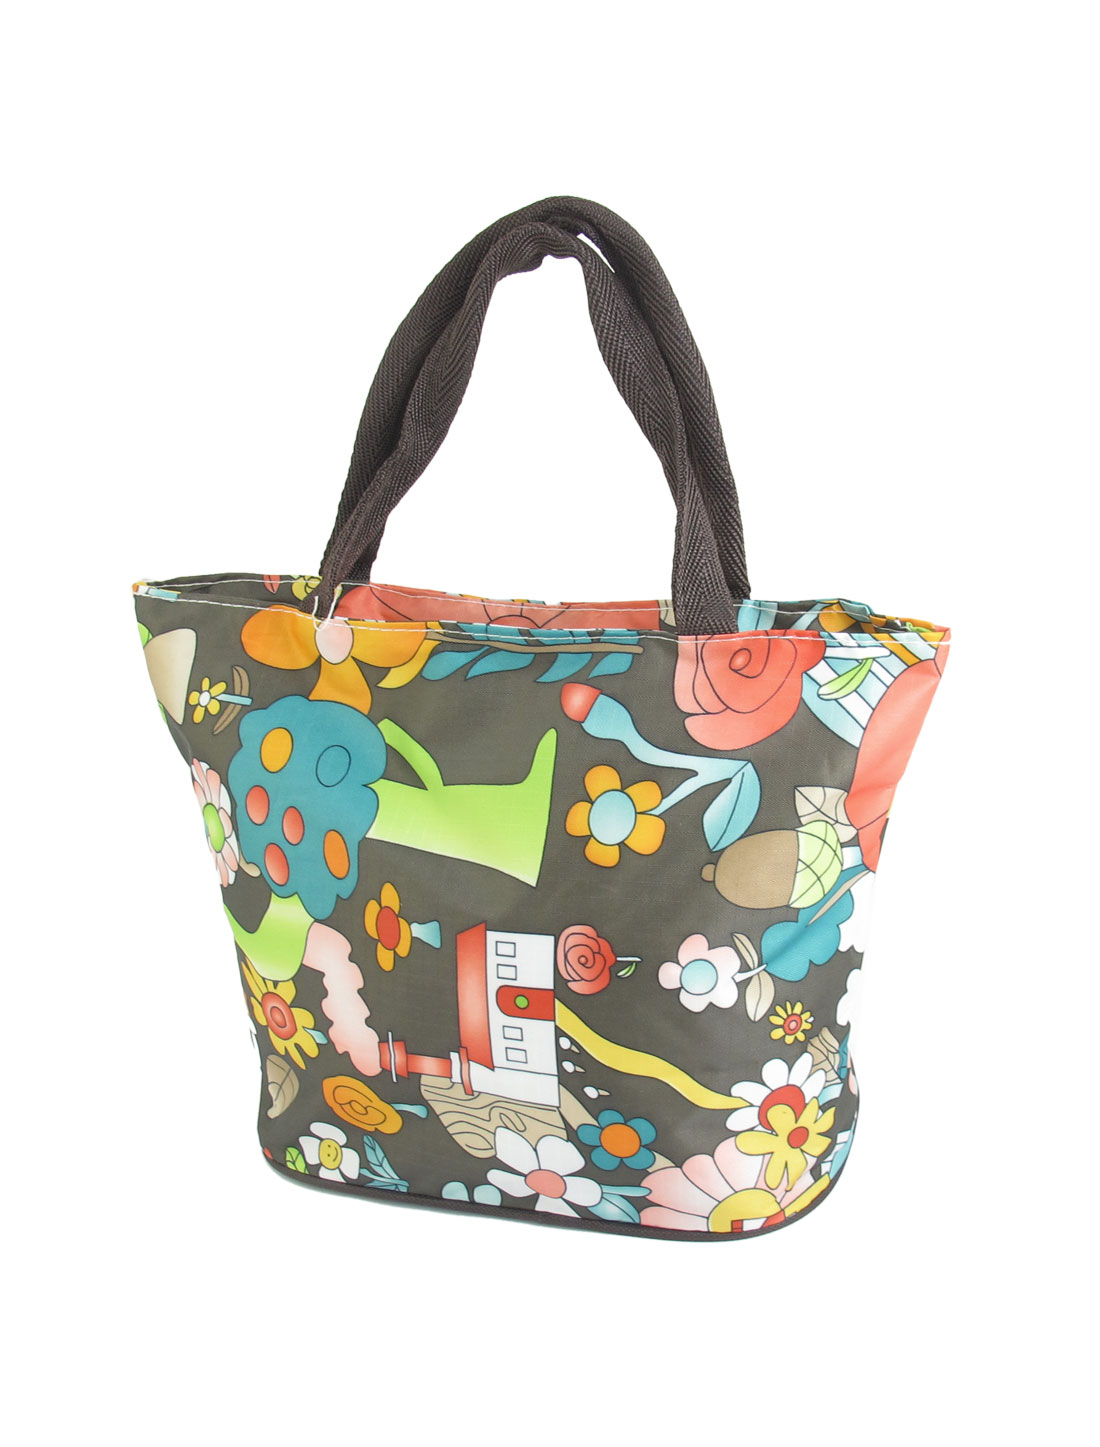 Women Zipper Closure Flower Pattern Oxford Cloth Tote Bag Handbag Colorful